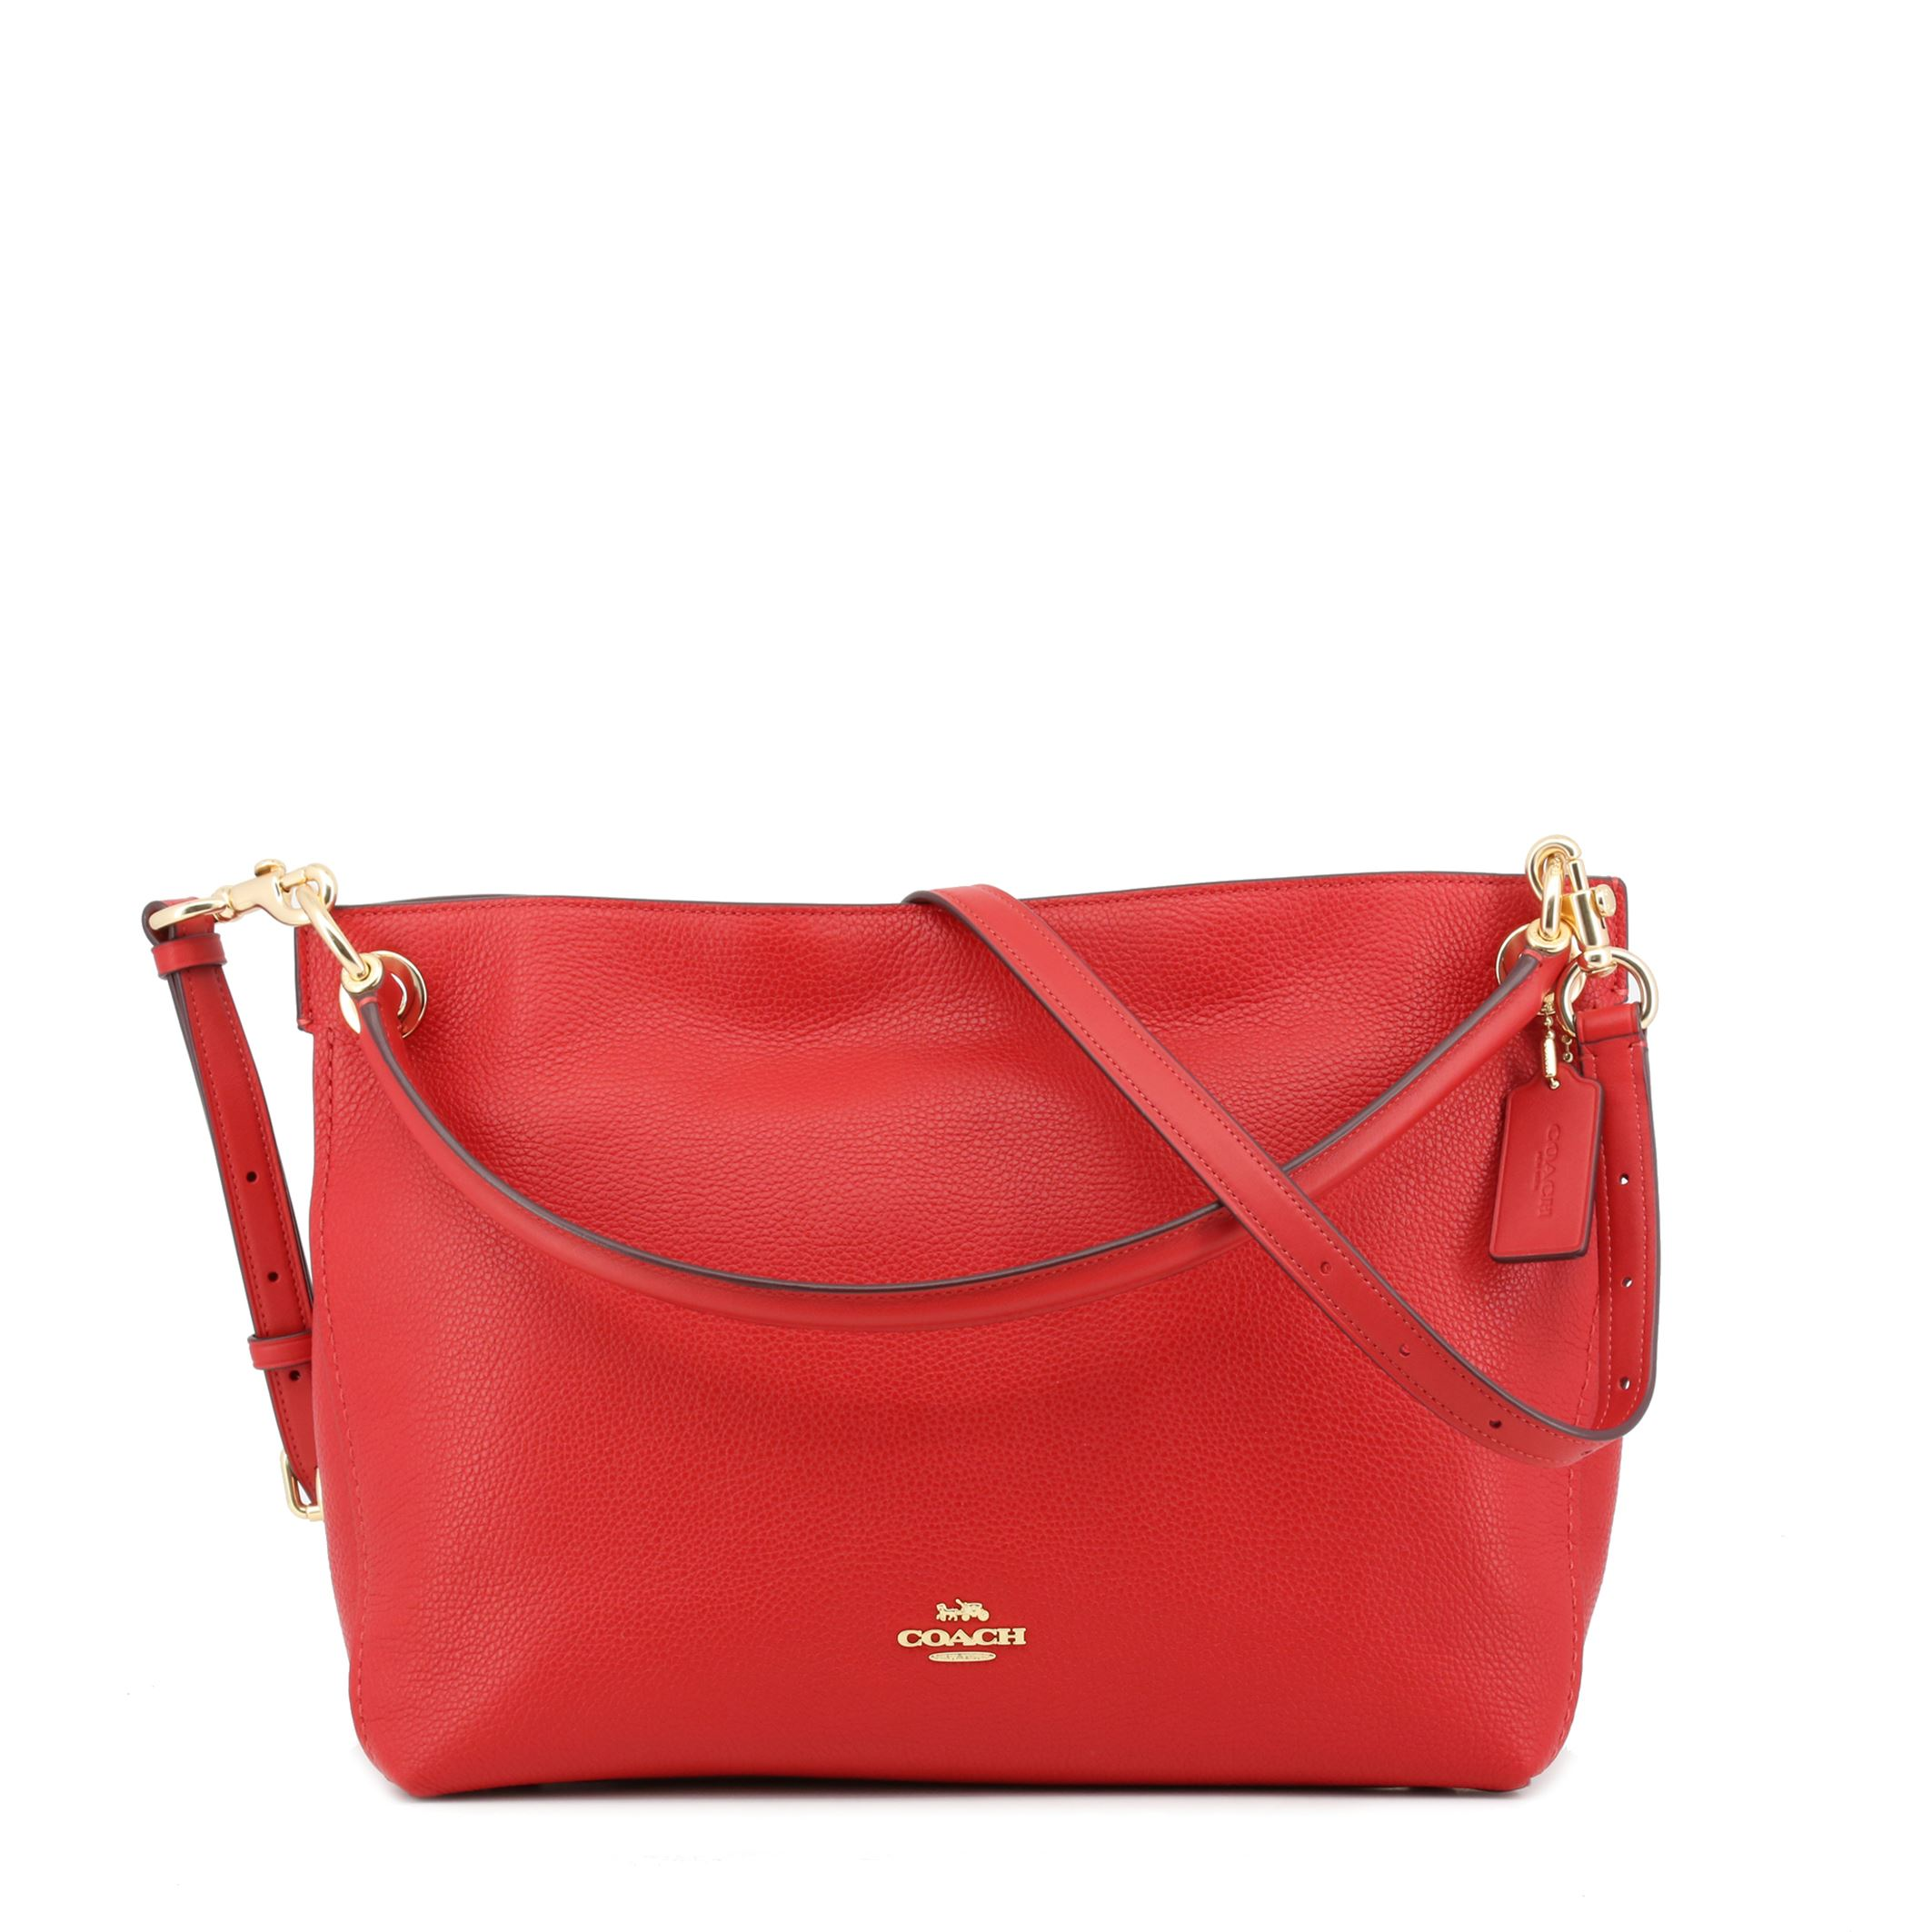 3c5b3fbcd2eb Details about Coach Women s Red Leather Shoulder Bag Zip Closing Removable  Strap